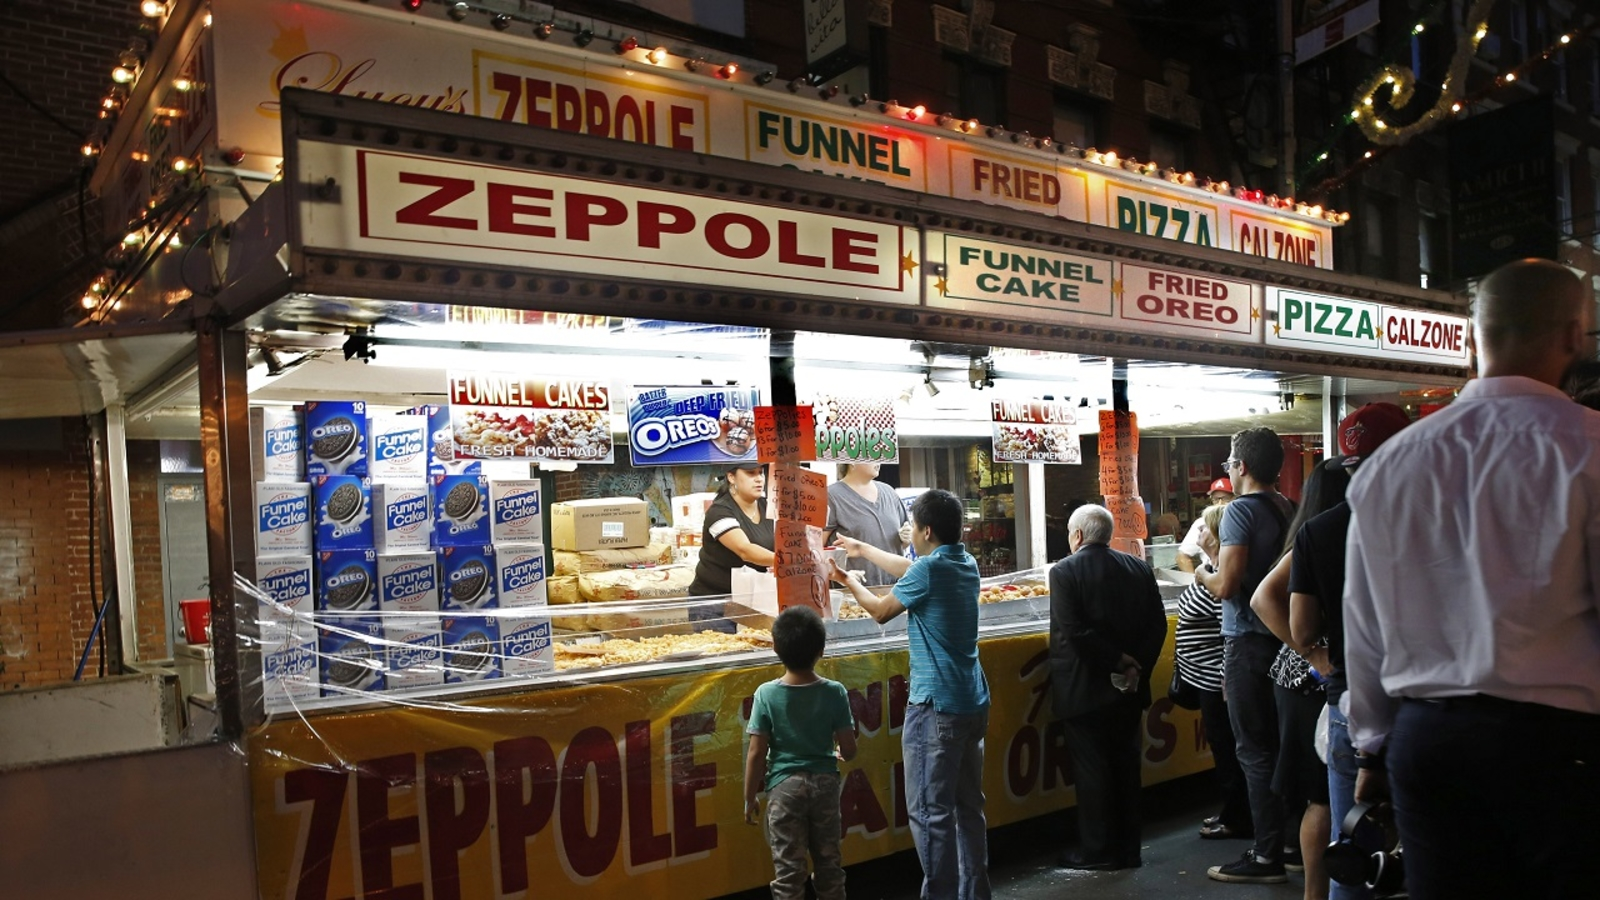 Cannoli time! Feast of San Gennaro kicks off in Little Italy